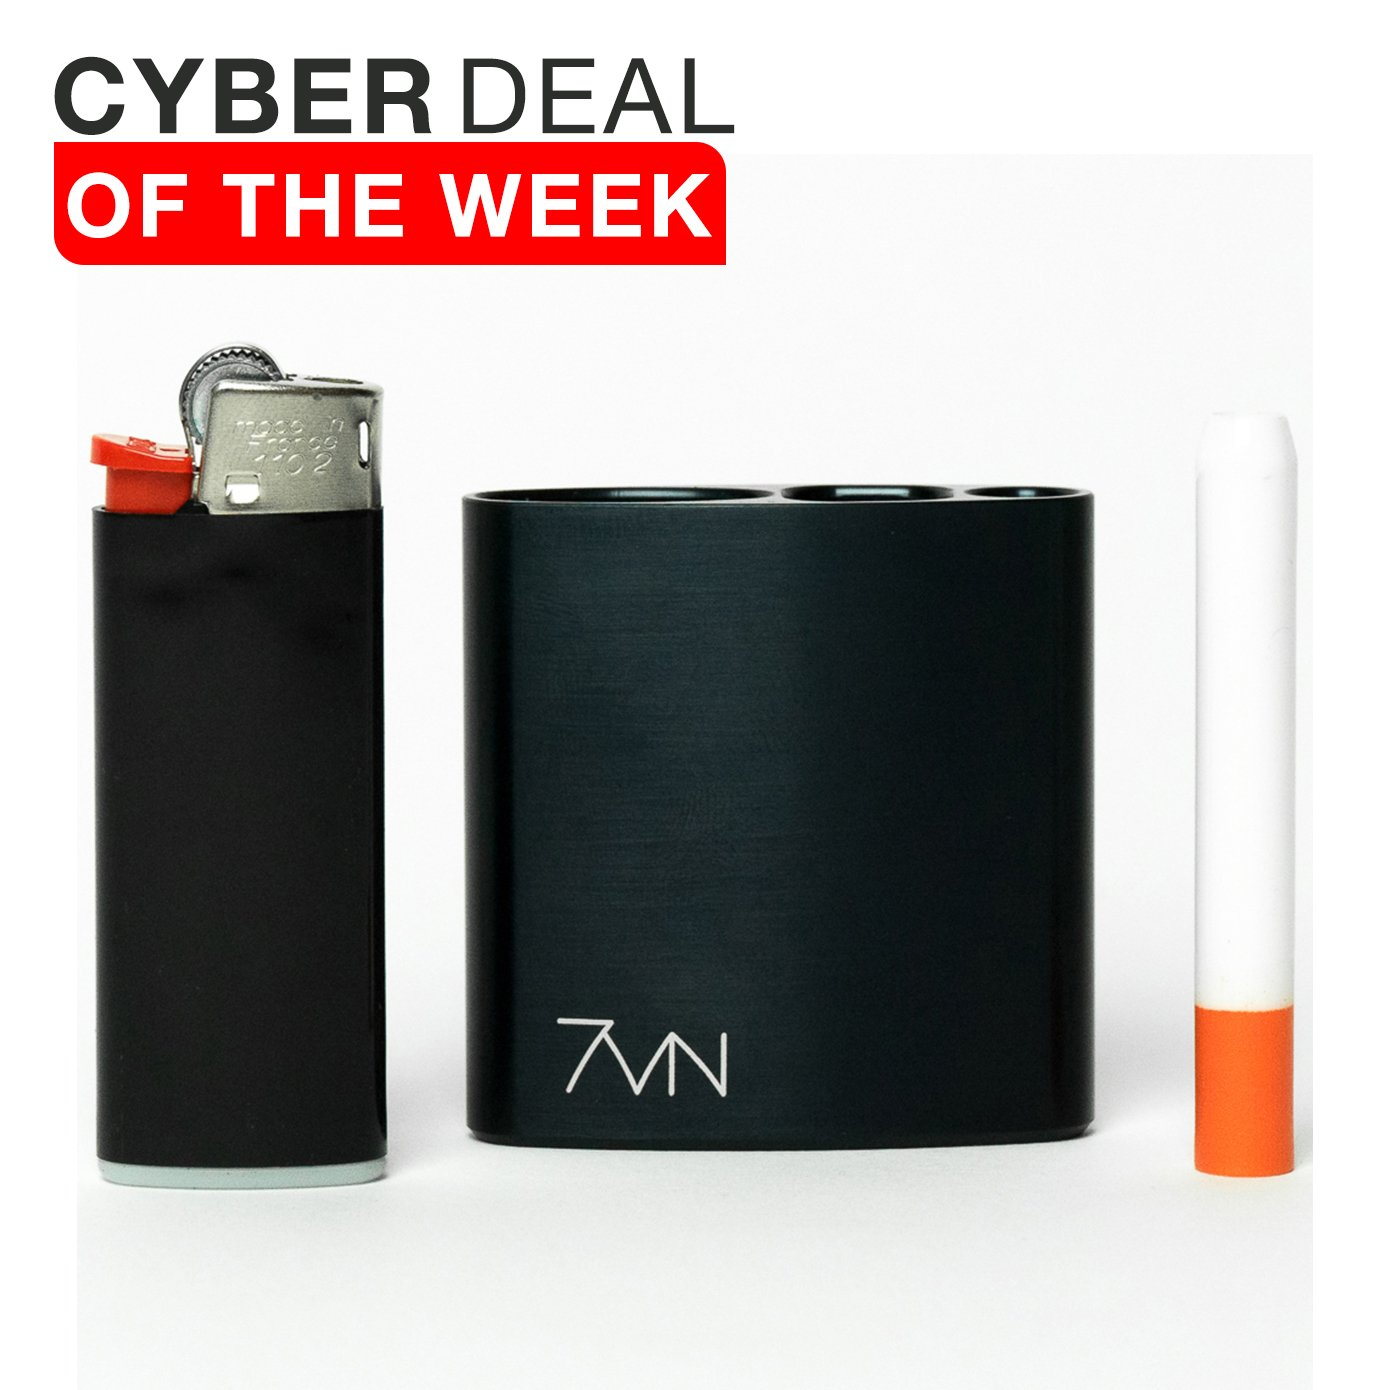 7vn - All in One Smell Proof Case Machined Anodized Aluminum (Gloss Black)